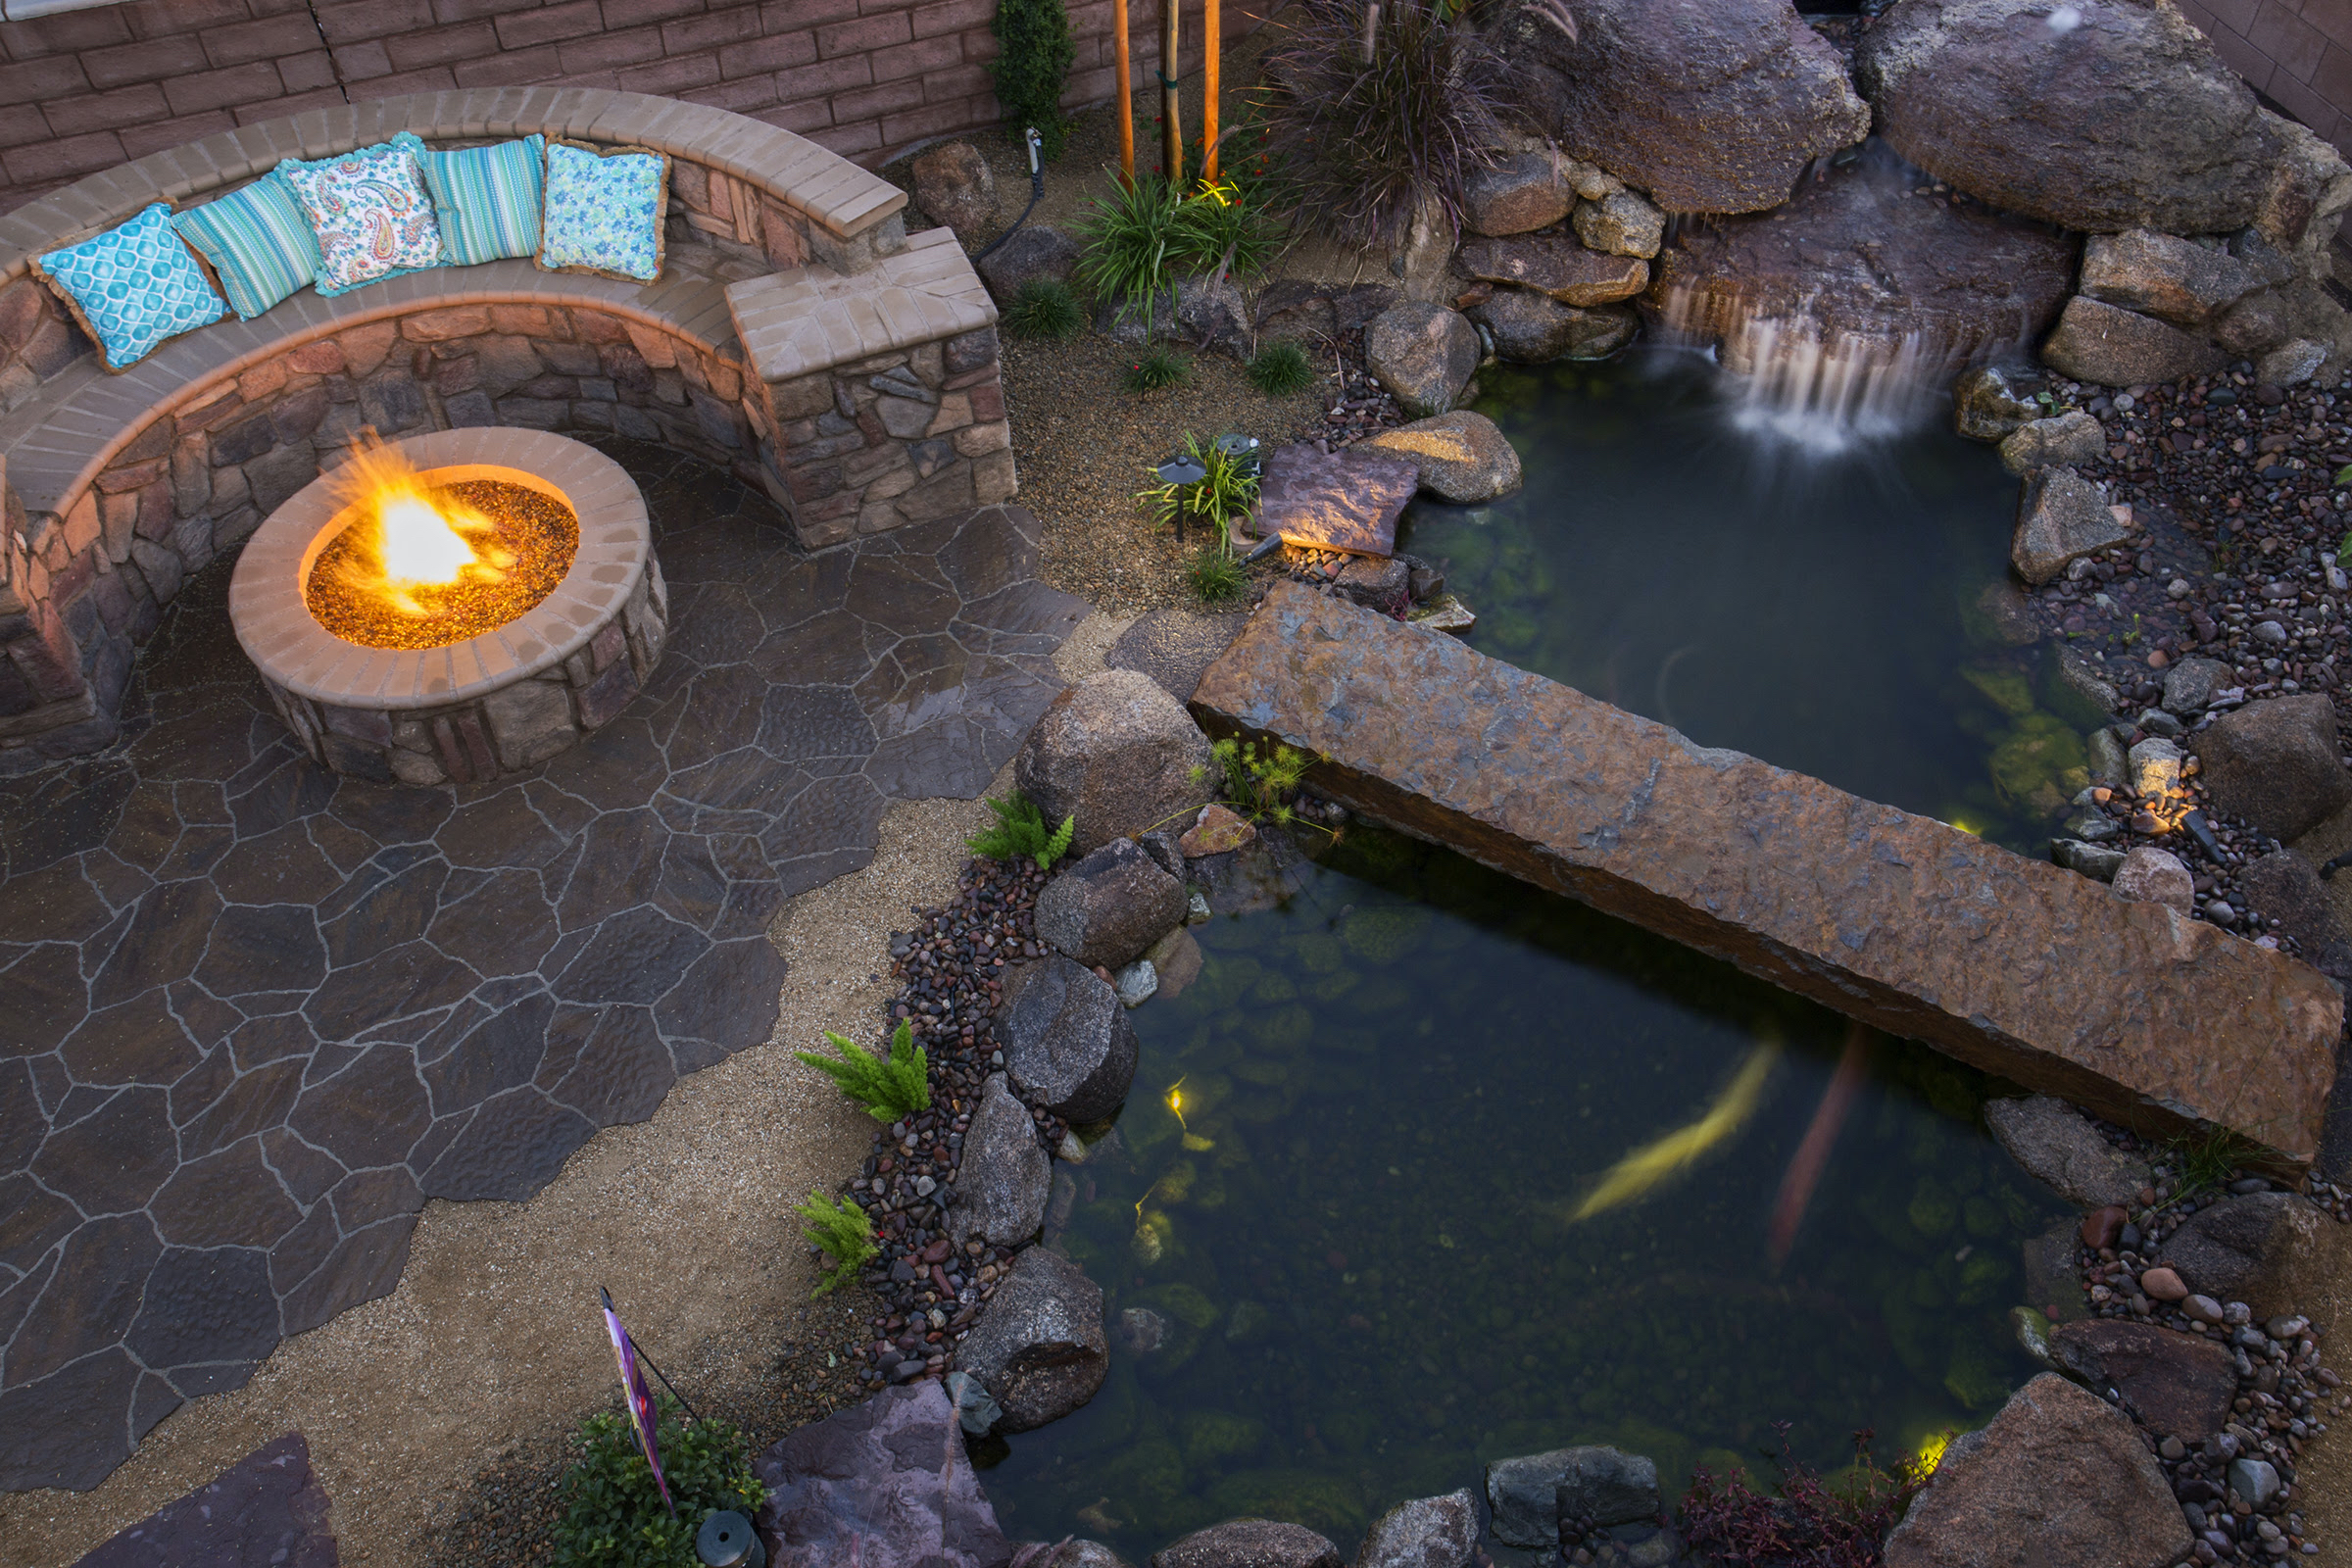 A beautiful backyard koi pond with a bridge, fire pit, and custom hardscapes.